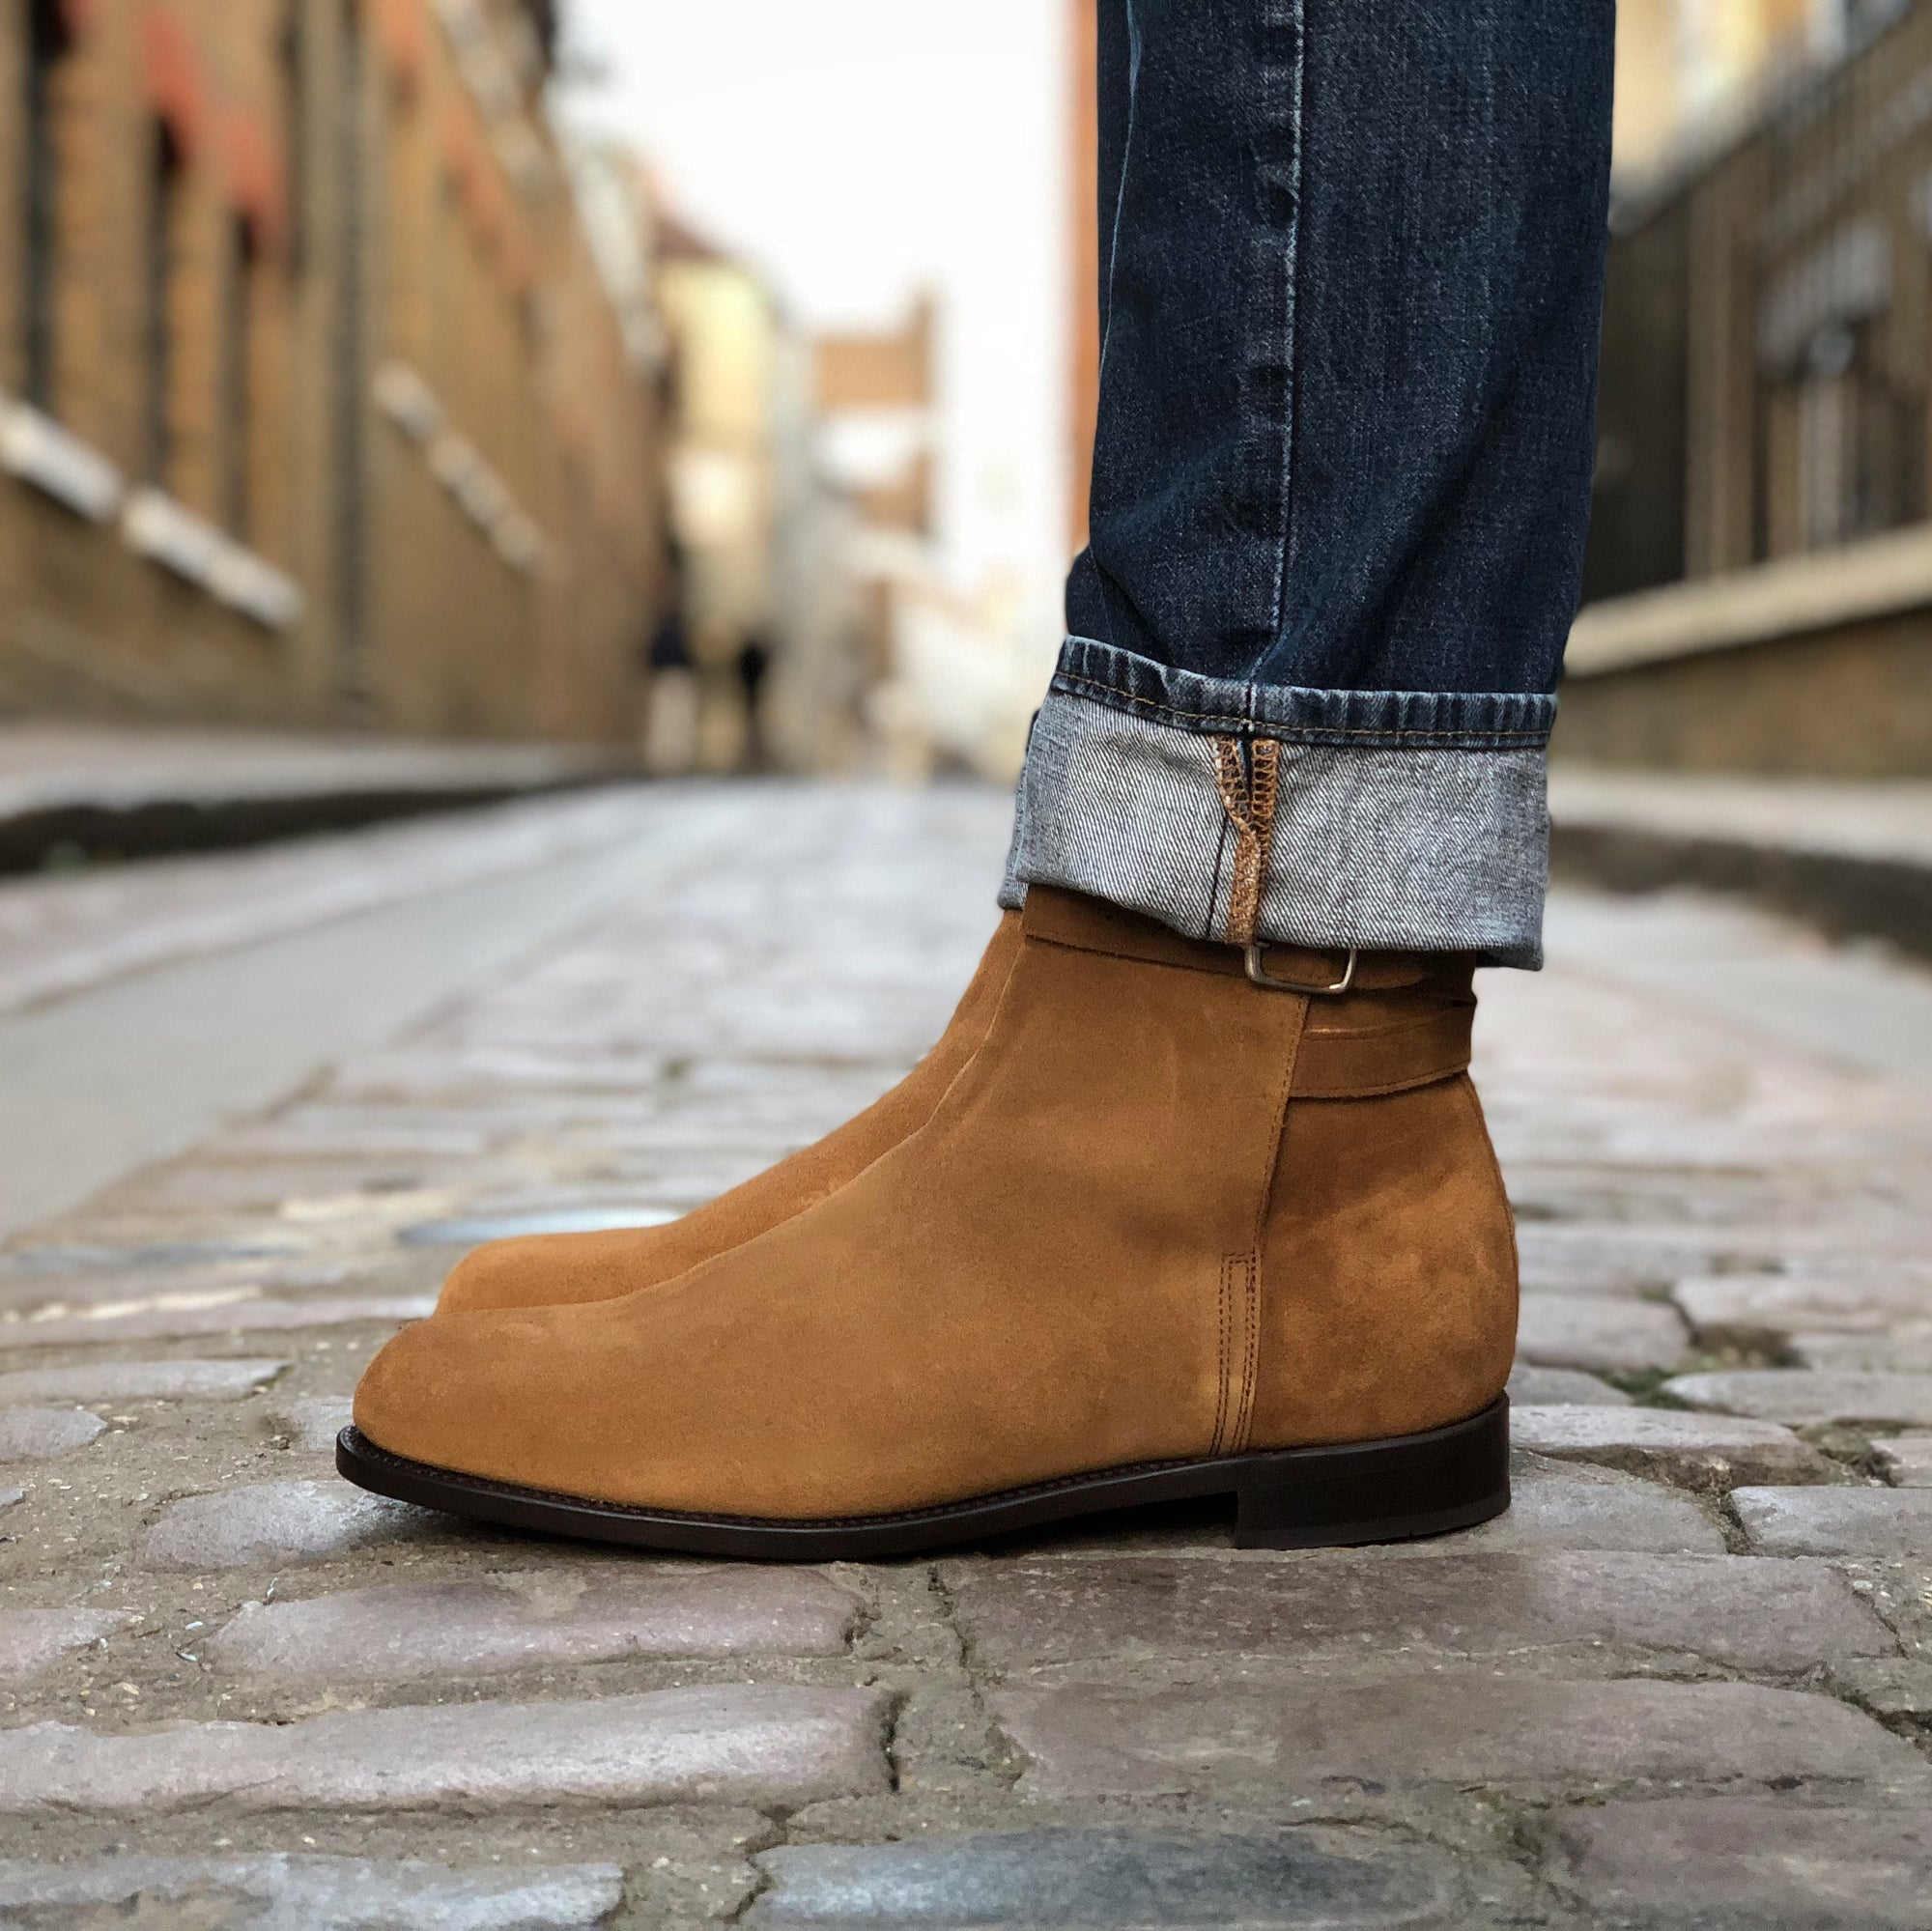 Men's Jodhpur Boots from Hugs & Co.